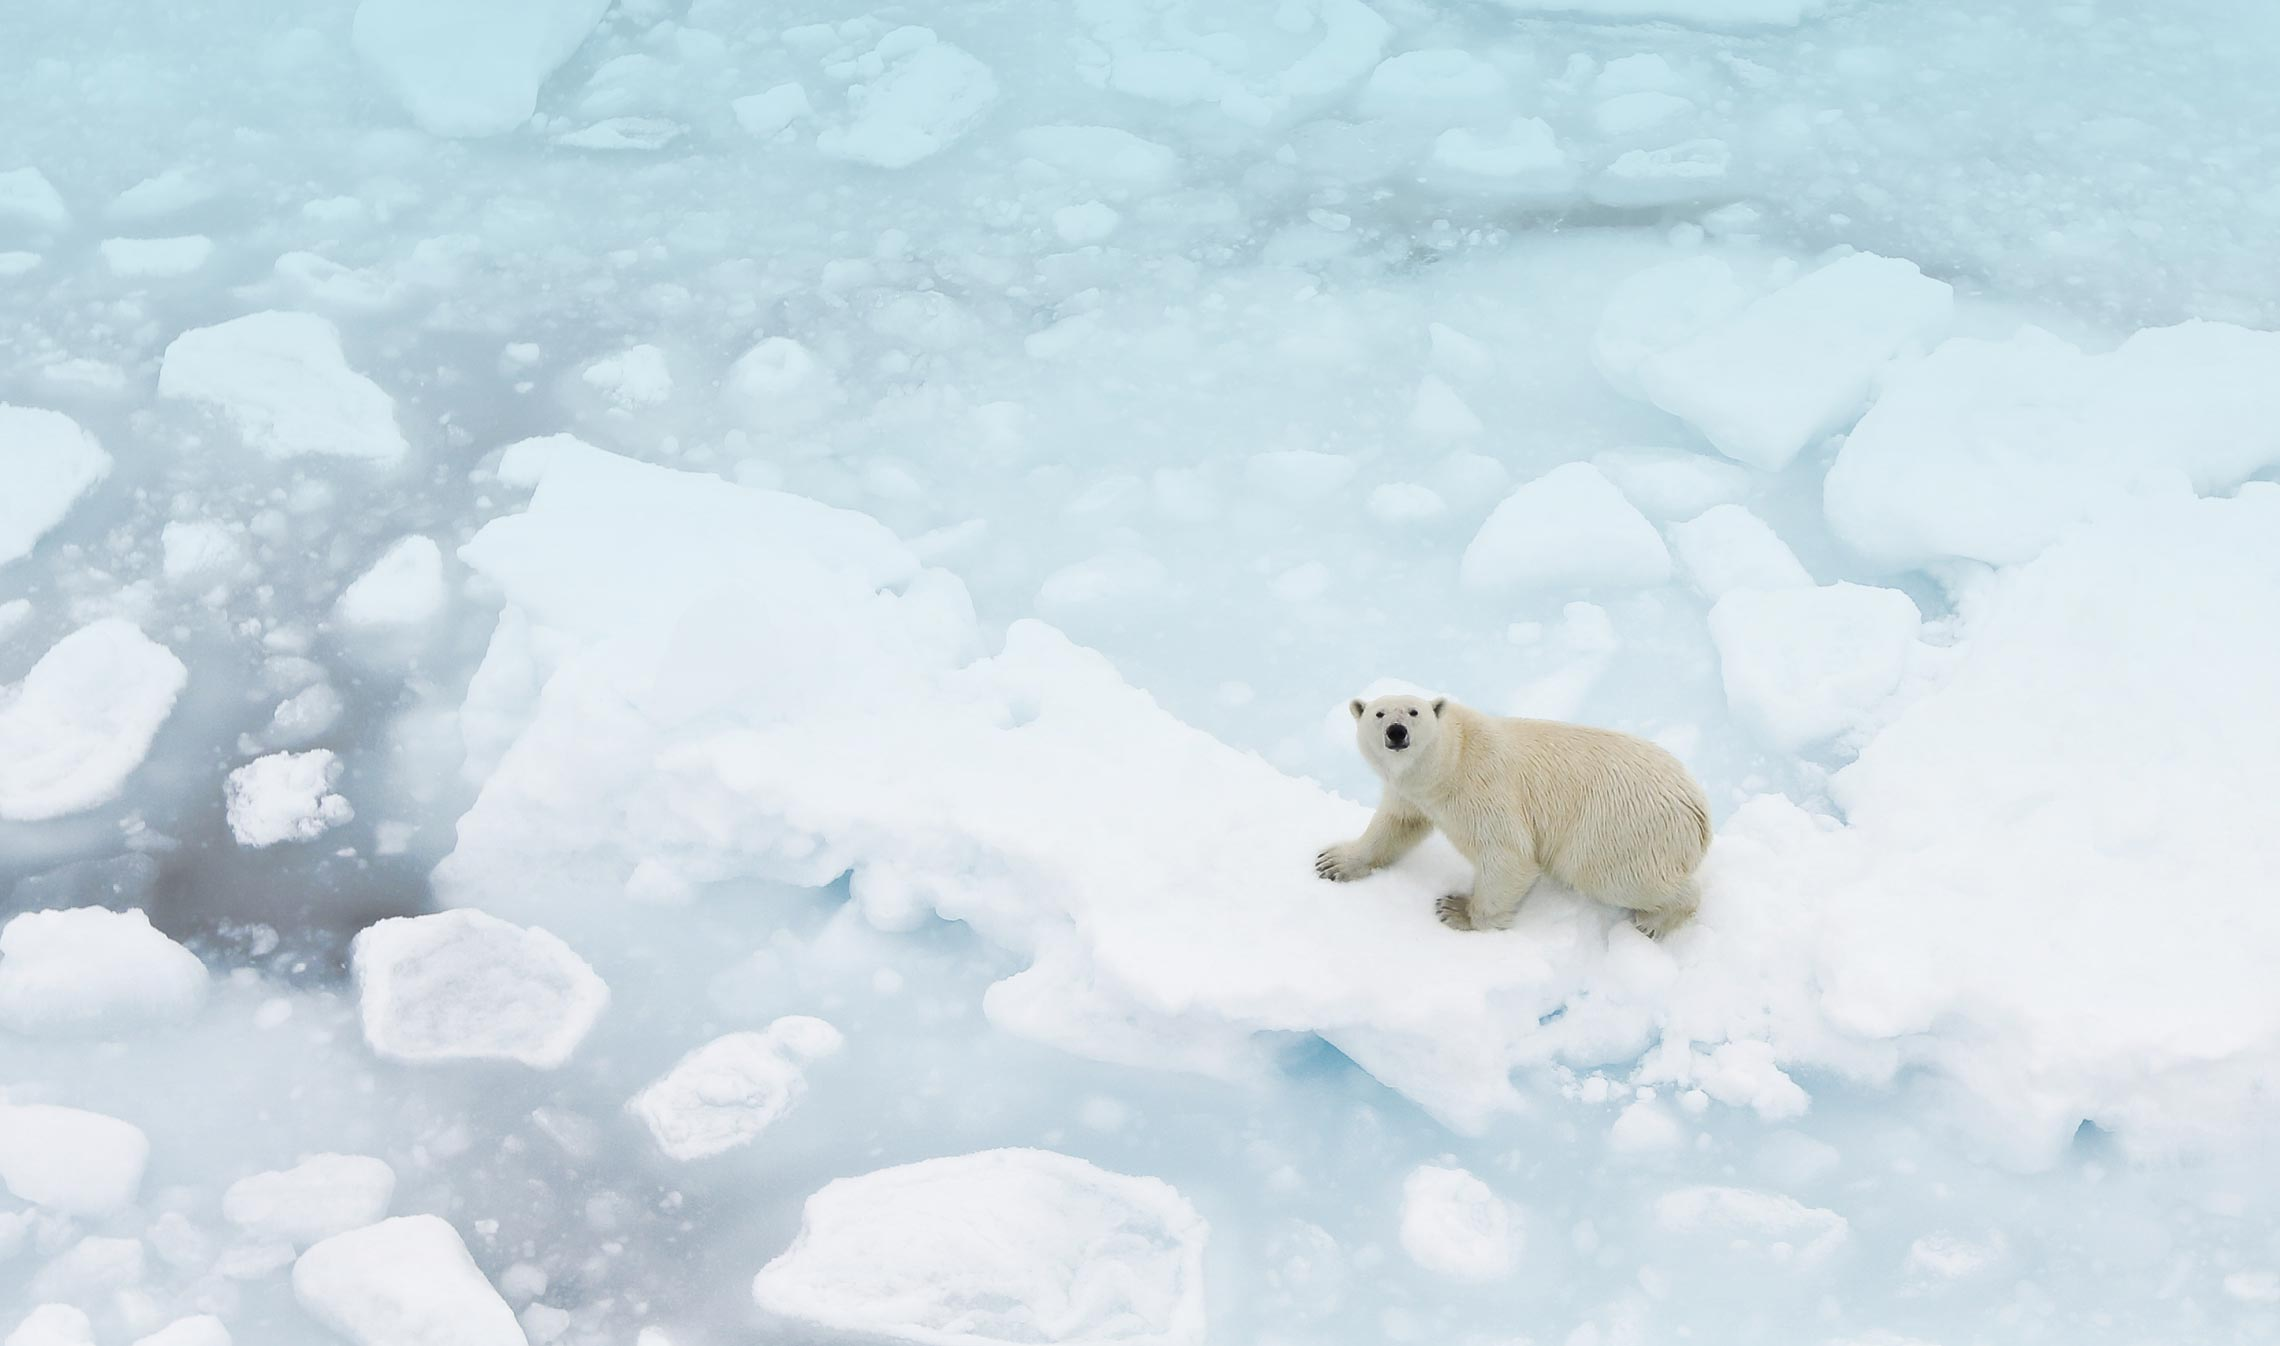 HOW DOES ARCTIC ICE AFFECT MARINE LIFE?